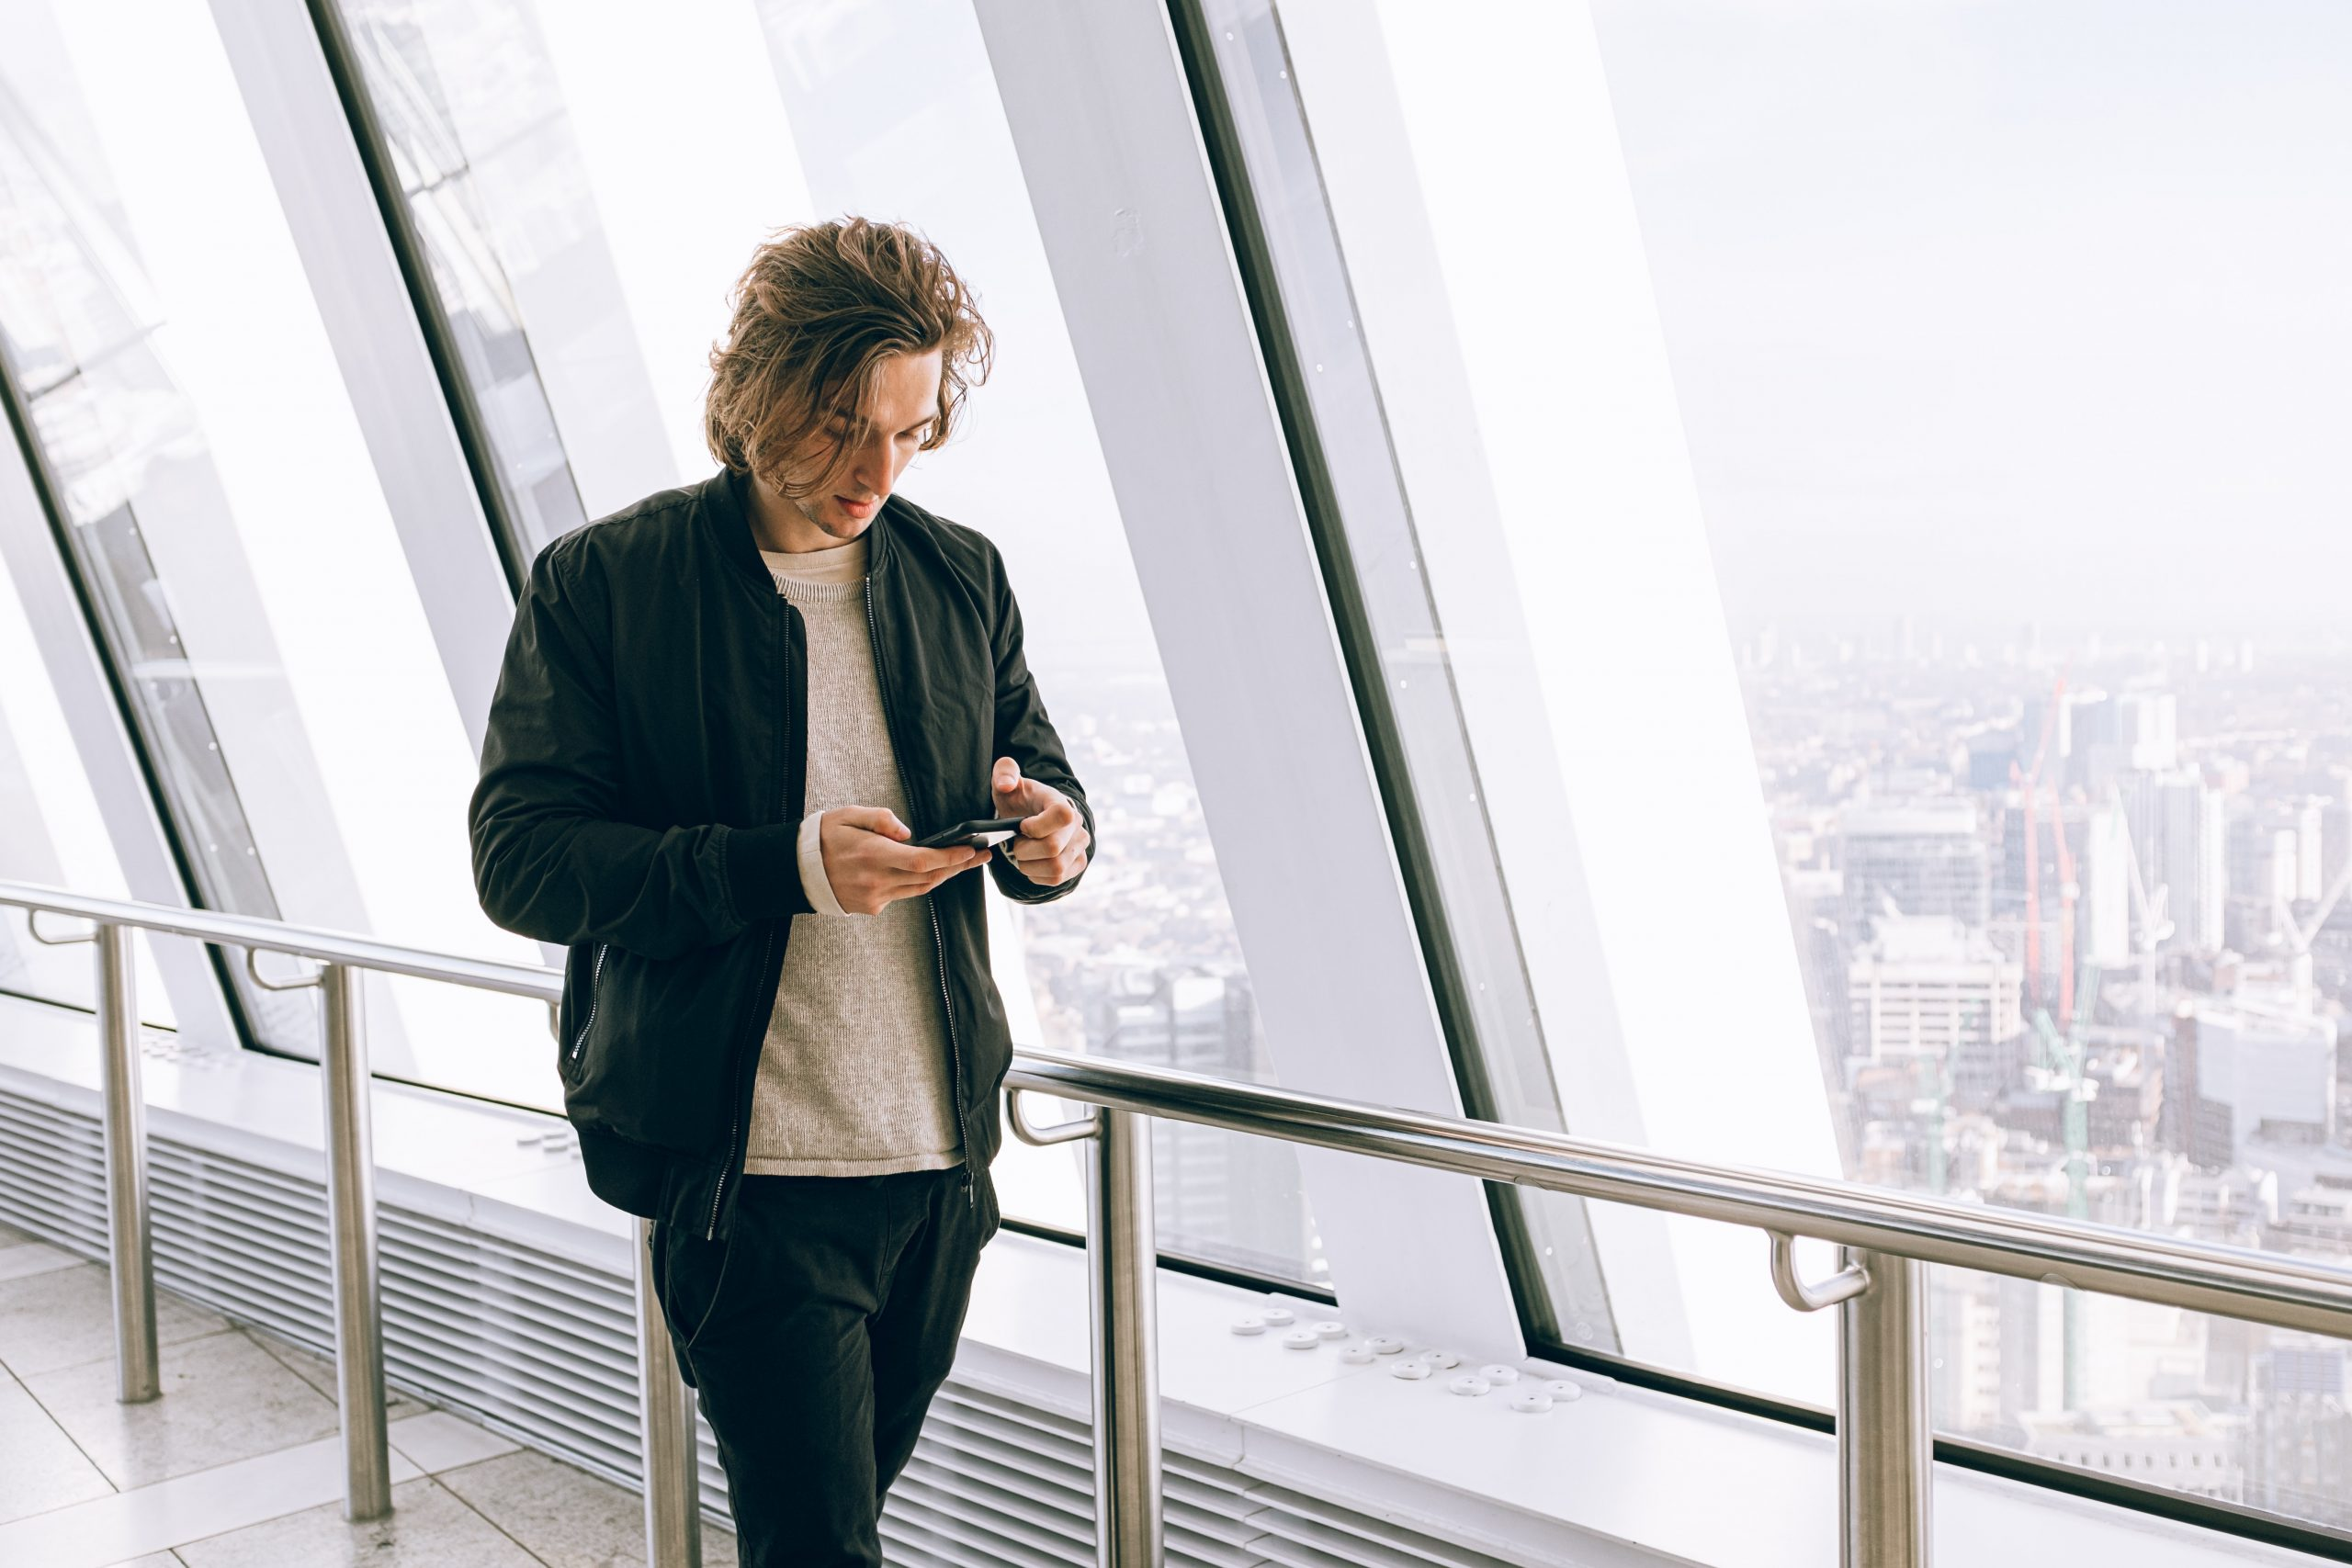 man walking along a walkway while looking at his phone, coping strategies, healthy coping mechanisms